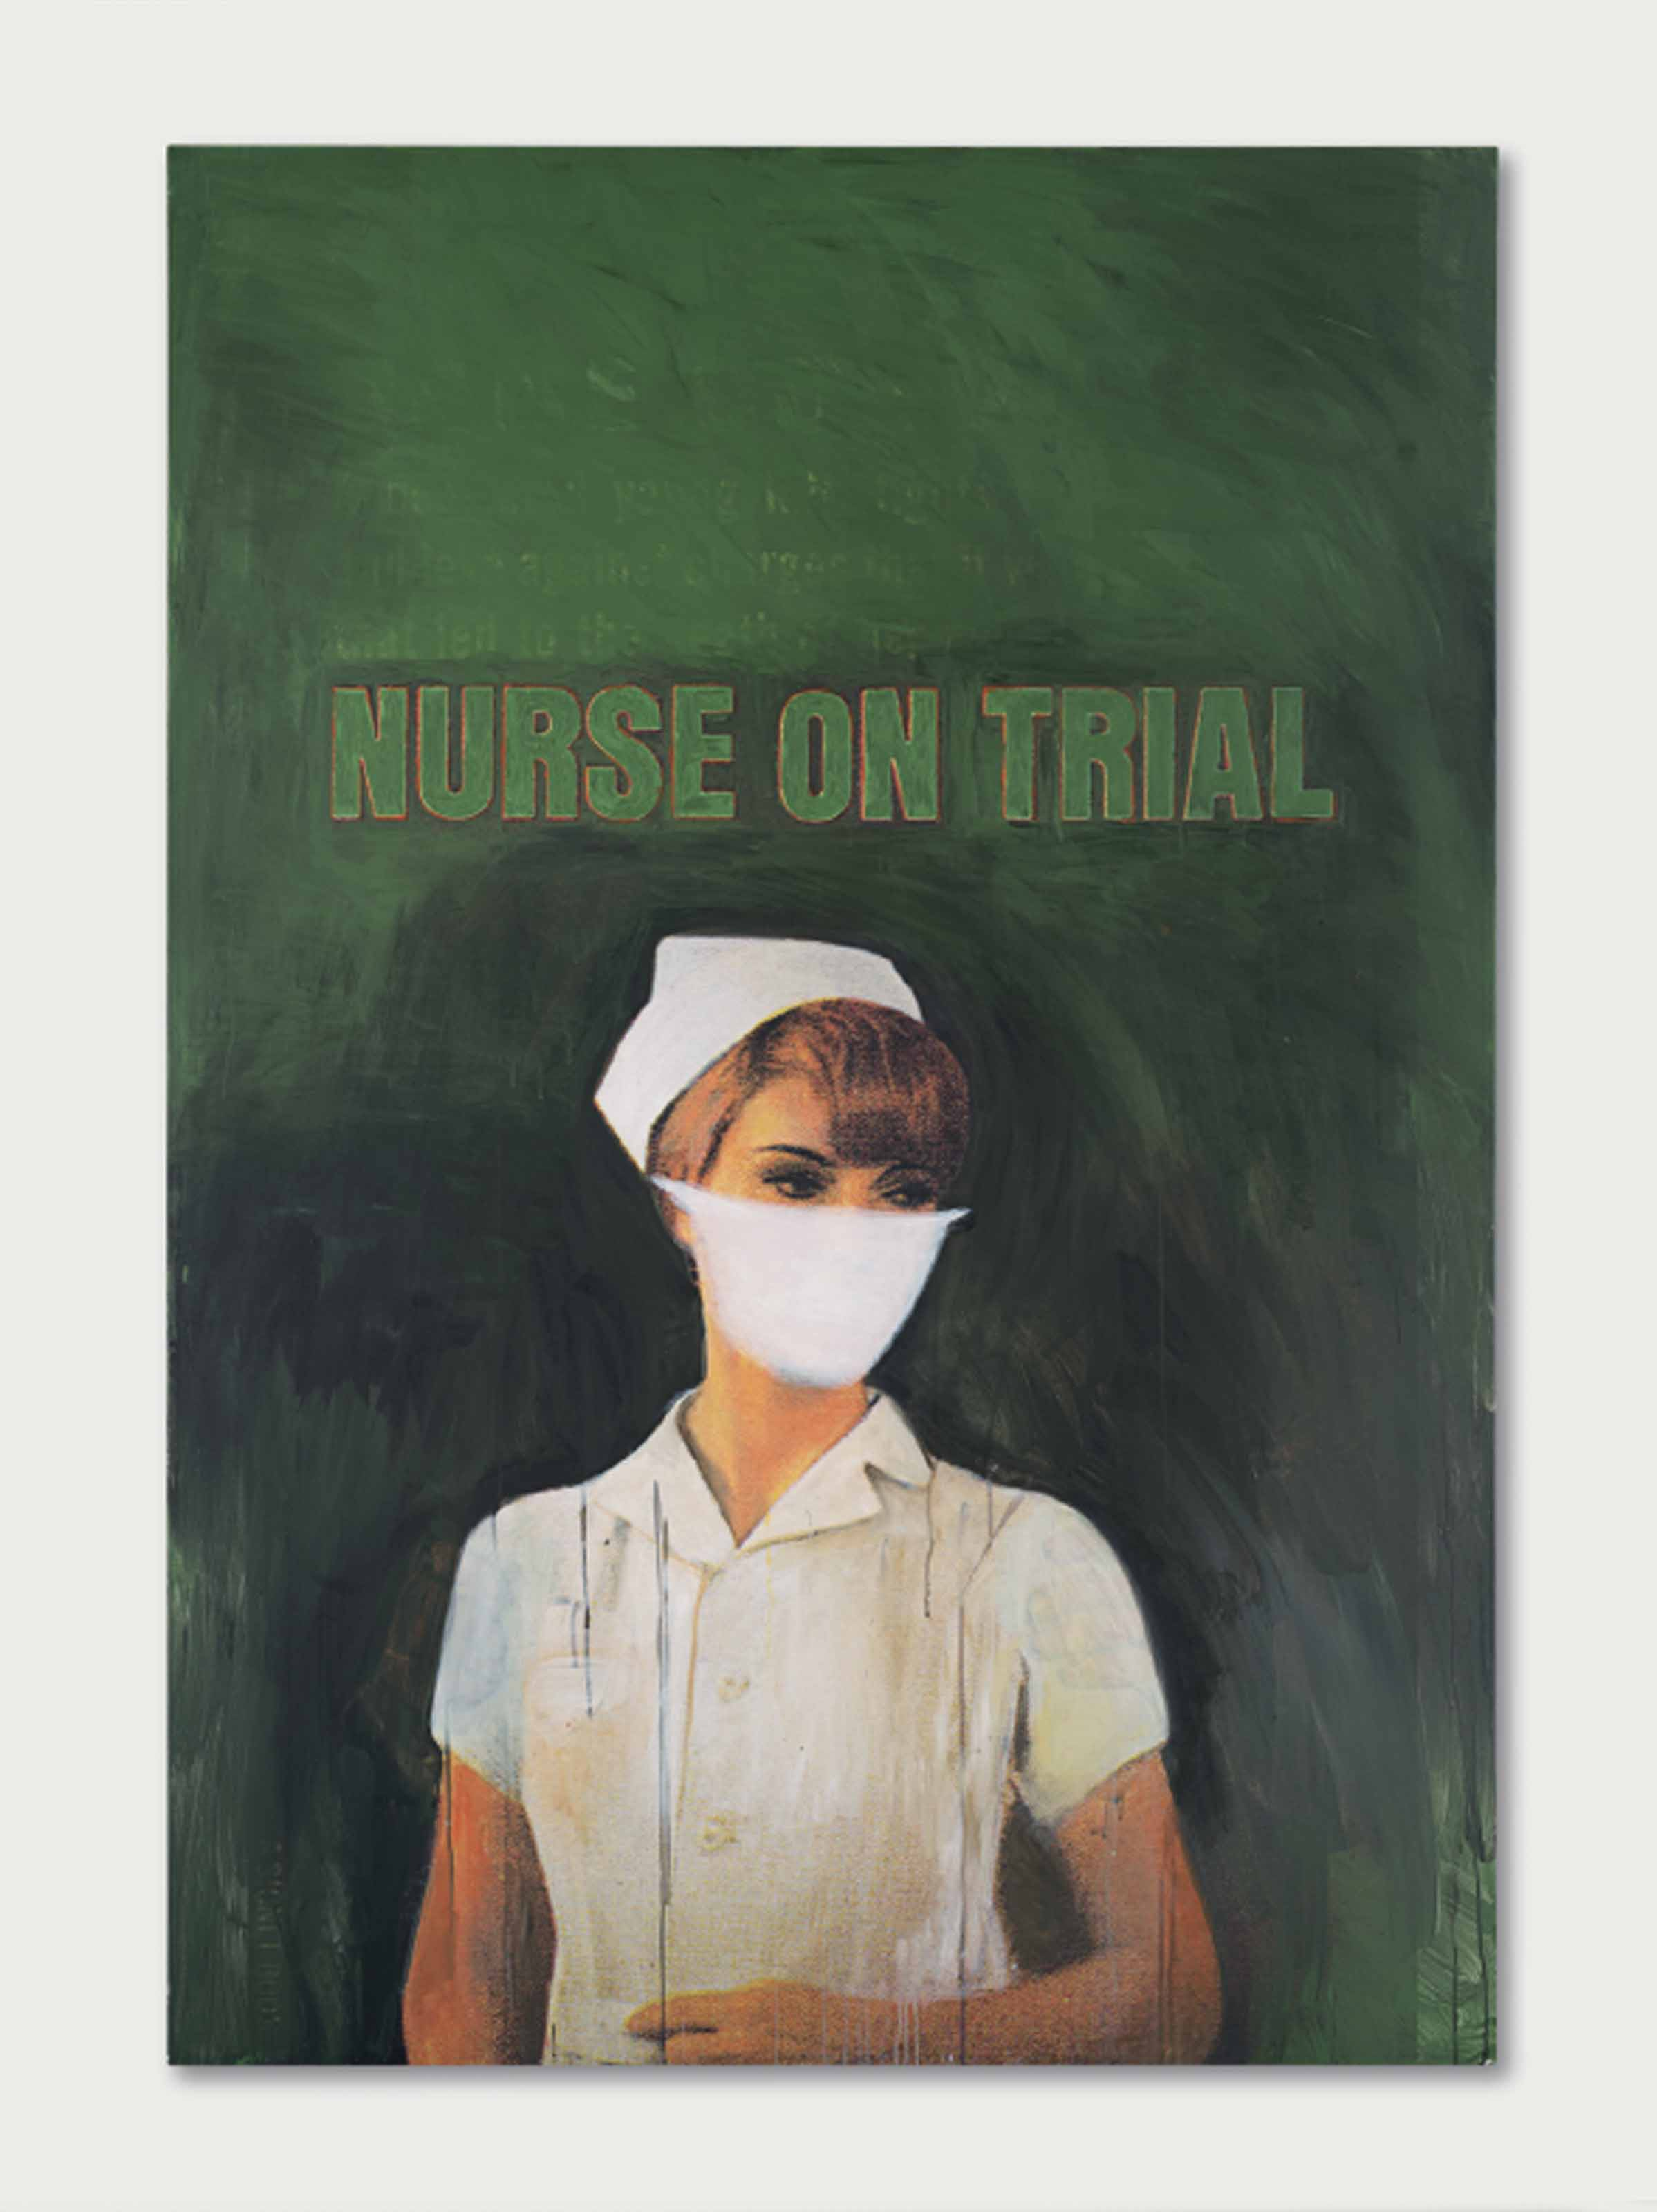 Nurse on Trial